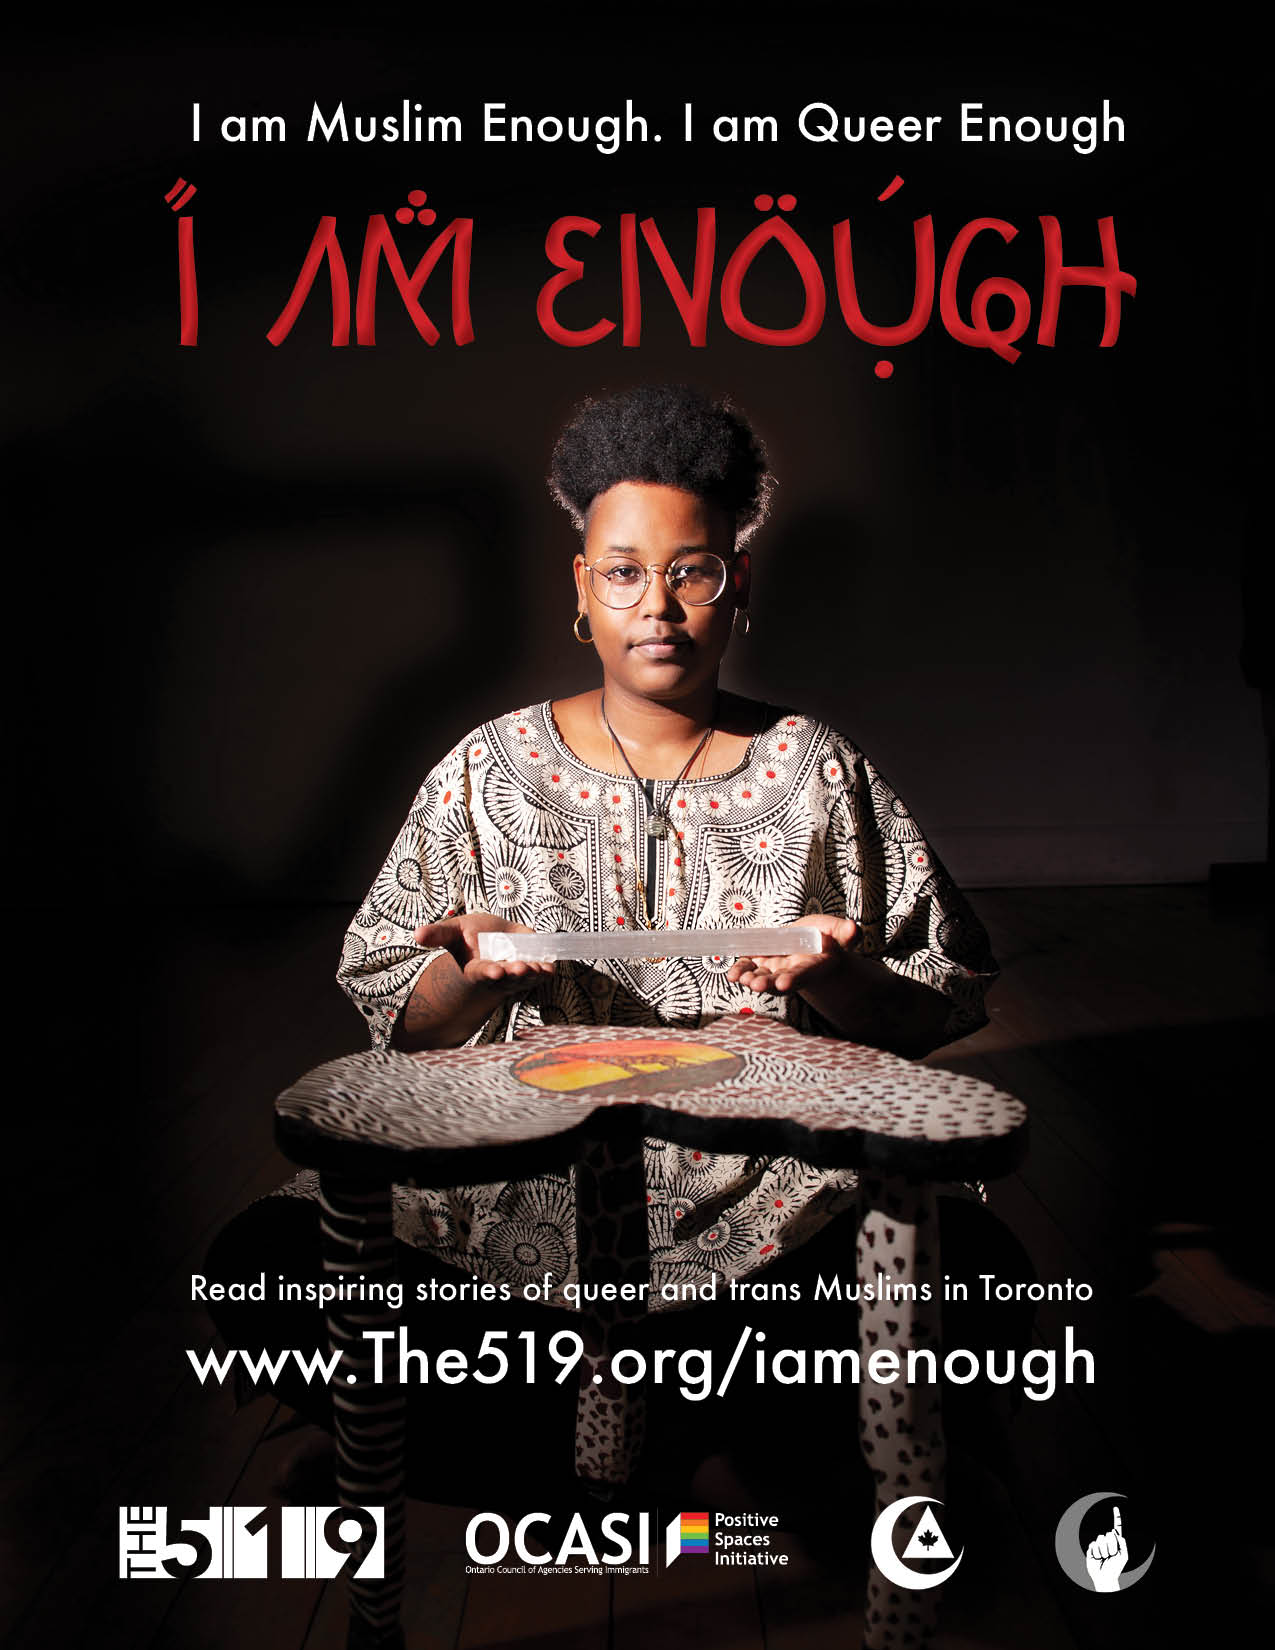 Poster: I am queer enough, I am muslim enough, I am enough. Portrait of a muslim person in front of a table with african motifs, holding a crystal.